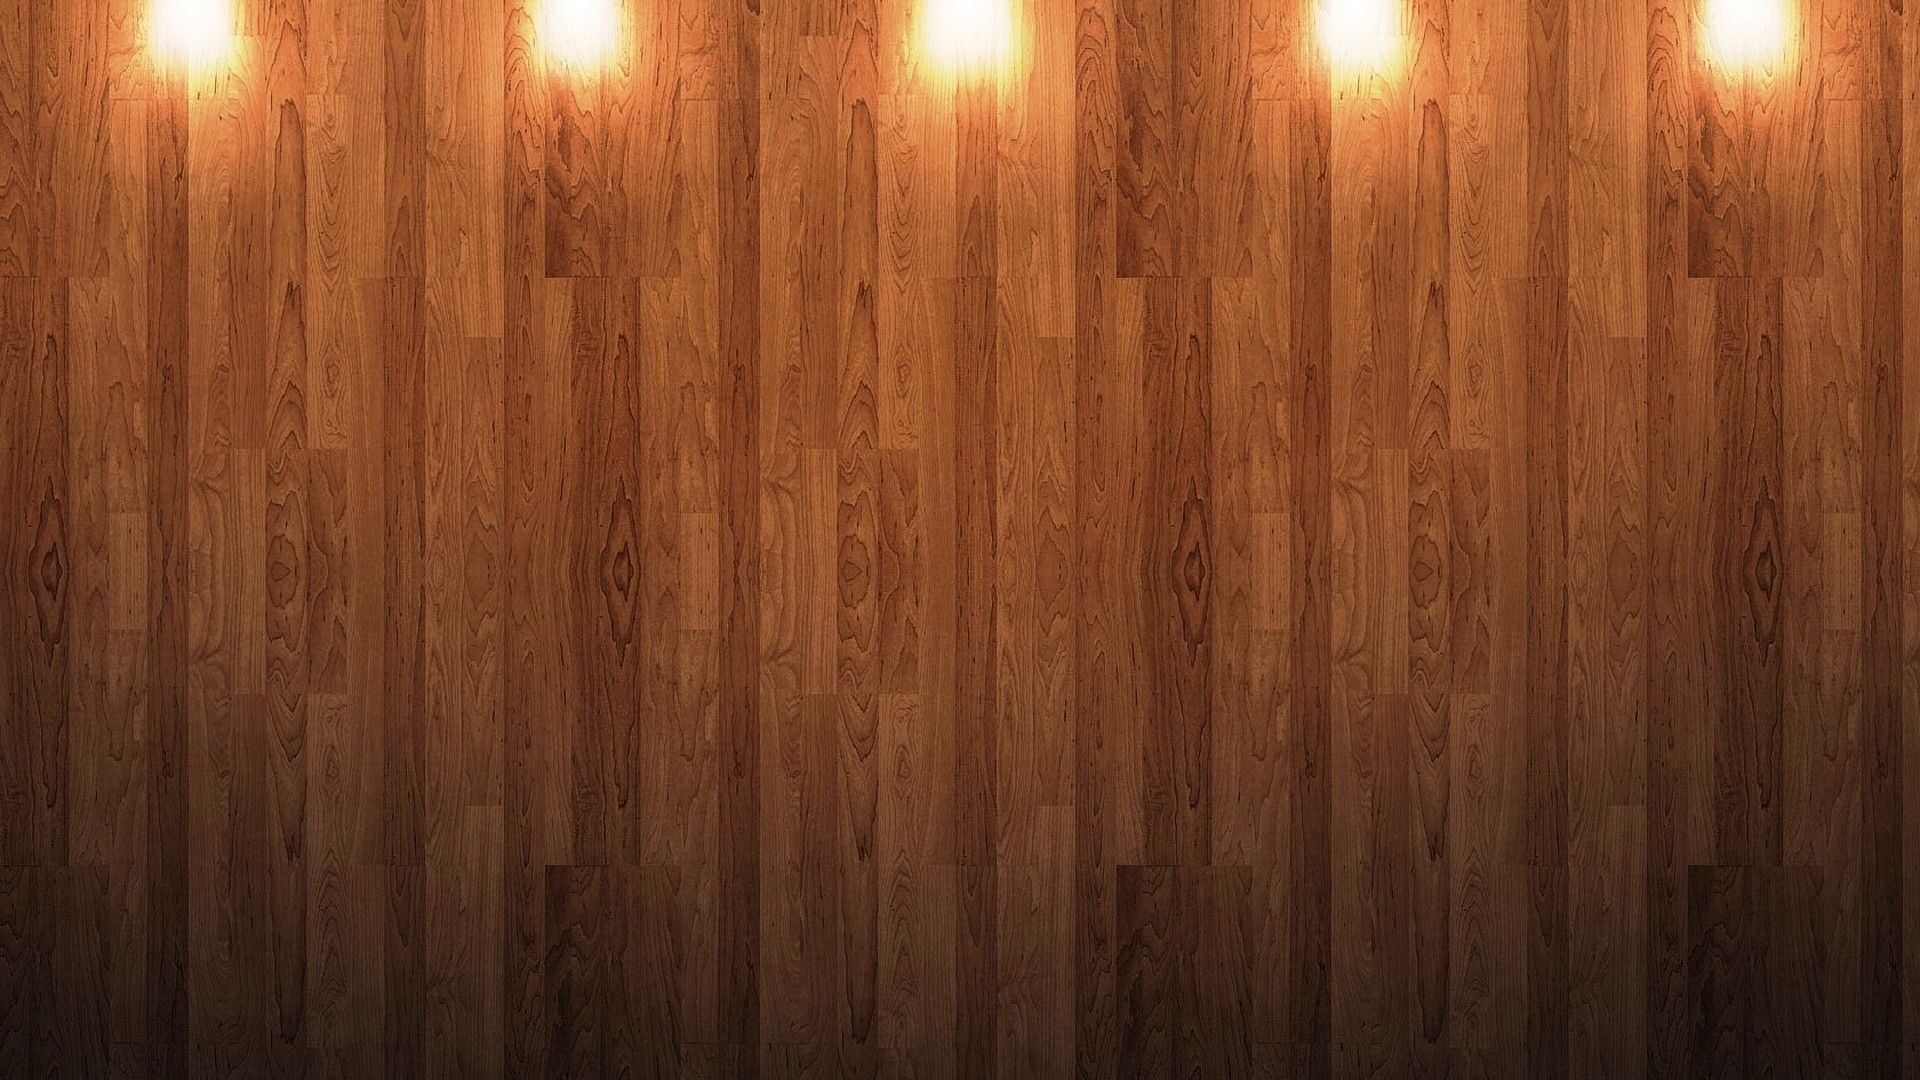 HD Wood Backgrounds  Wallpaper  1920x1080